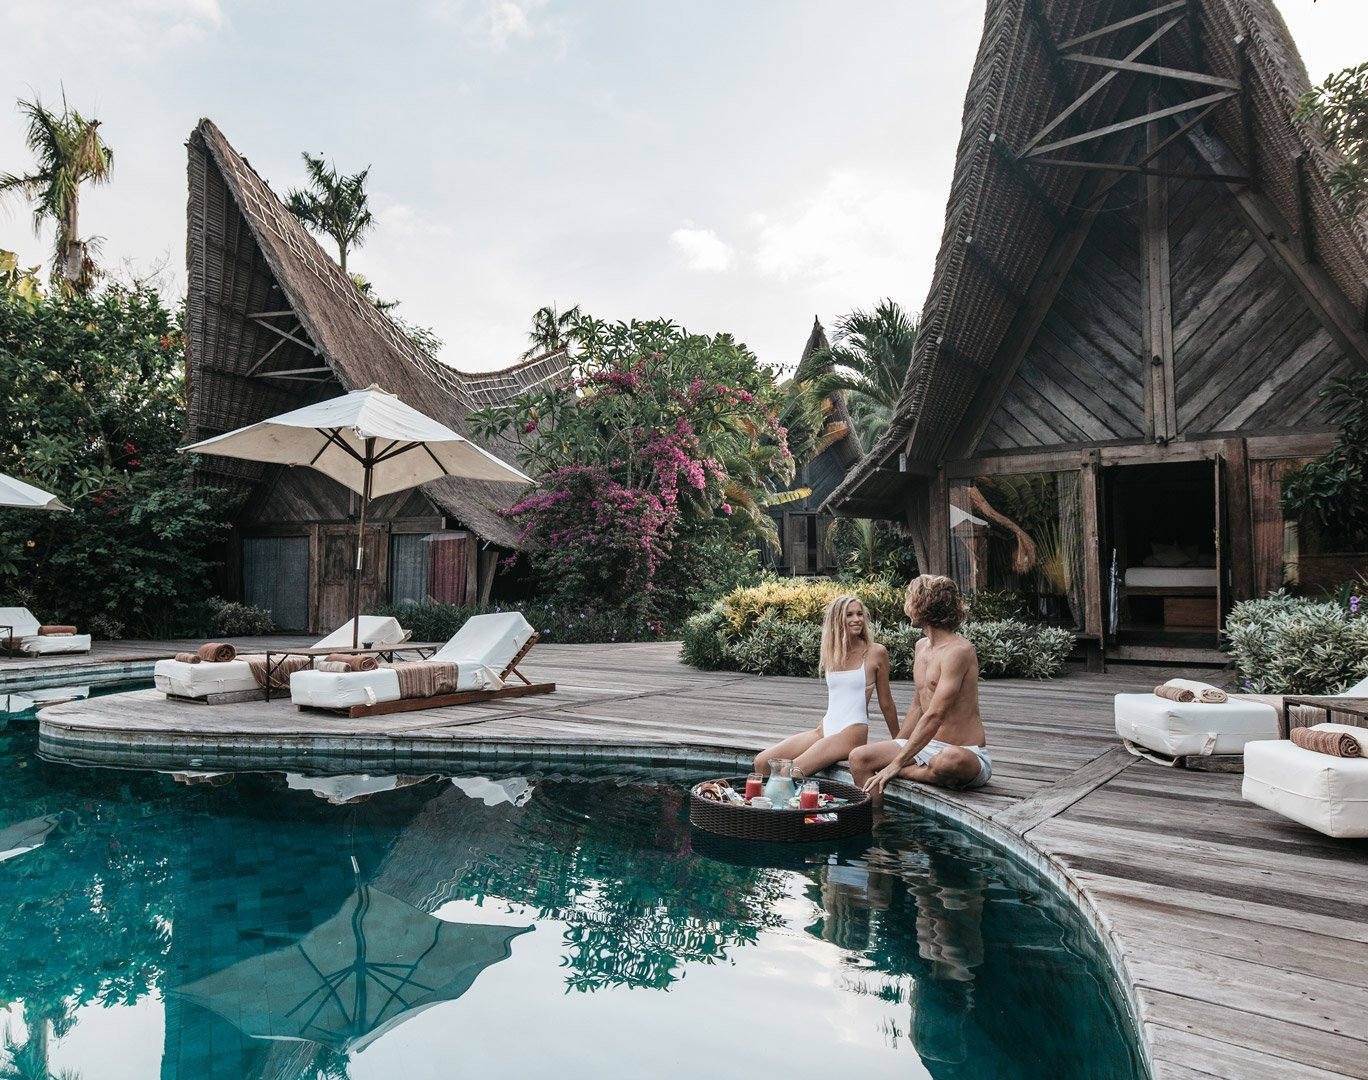 Lovers enjoying their deliciously fresh floating breakfast at Own Villa next to their poolside eco design bedrooms made of recycled iron wood and surrounded by tropical Bali nature